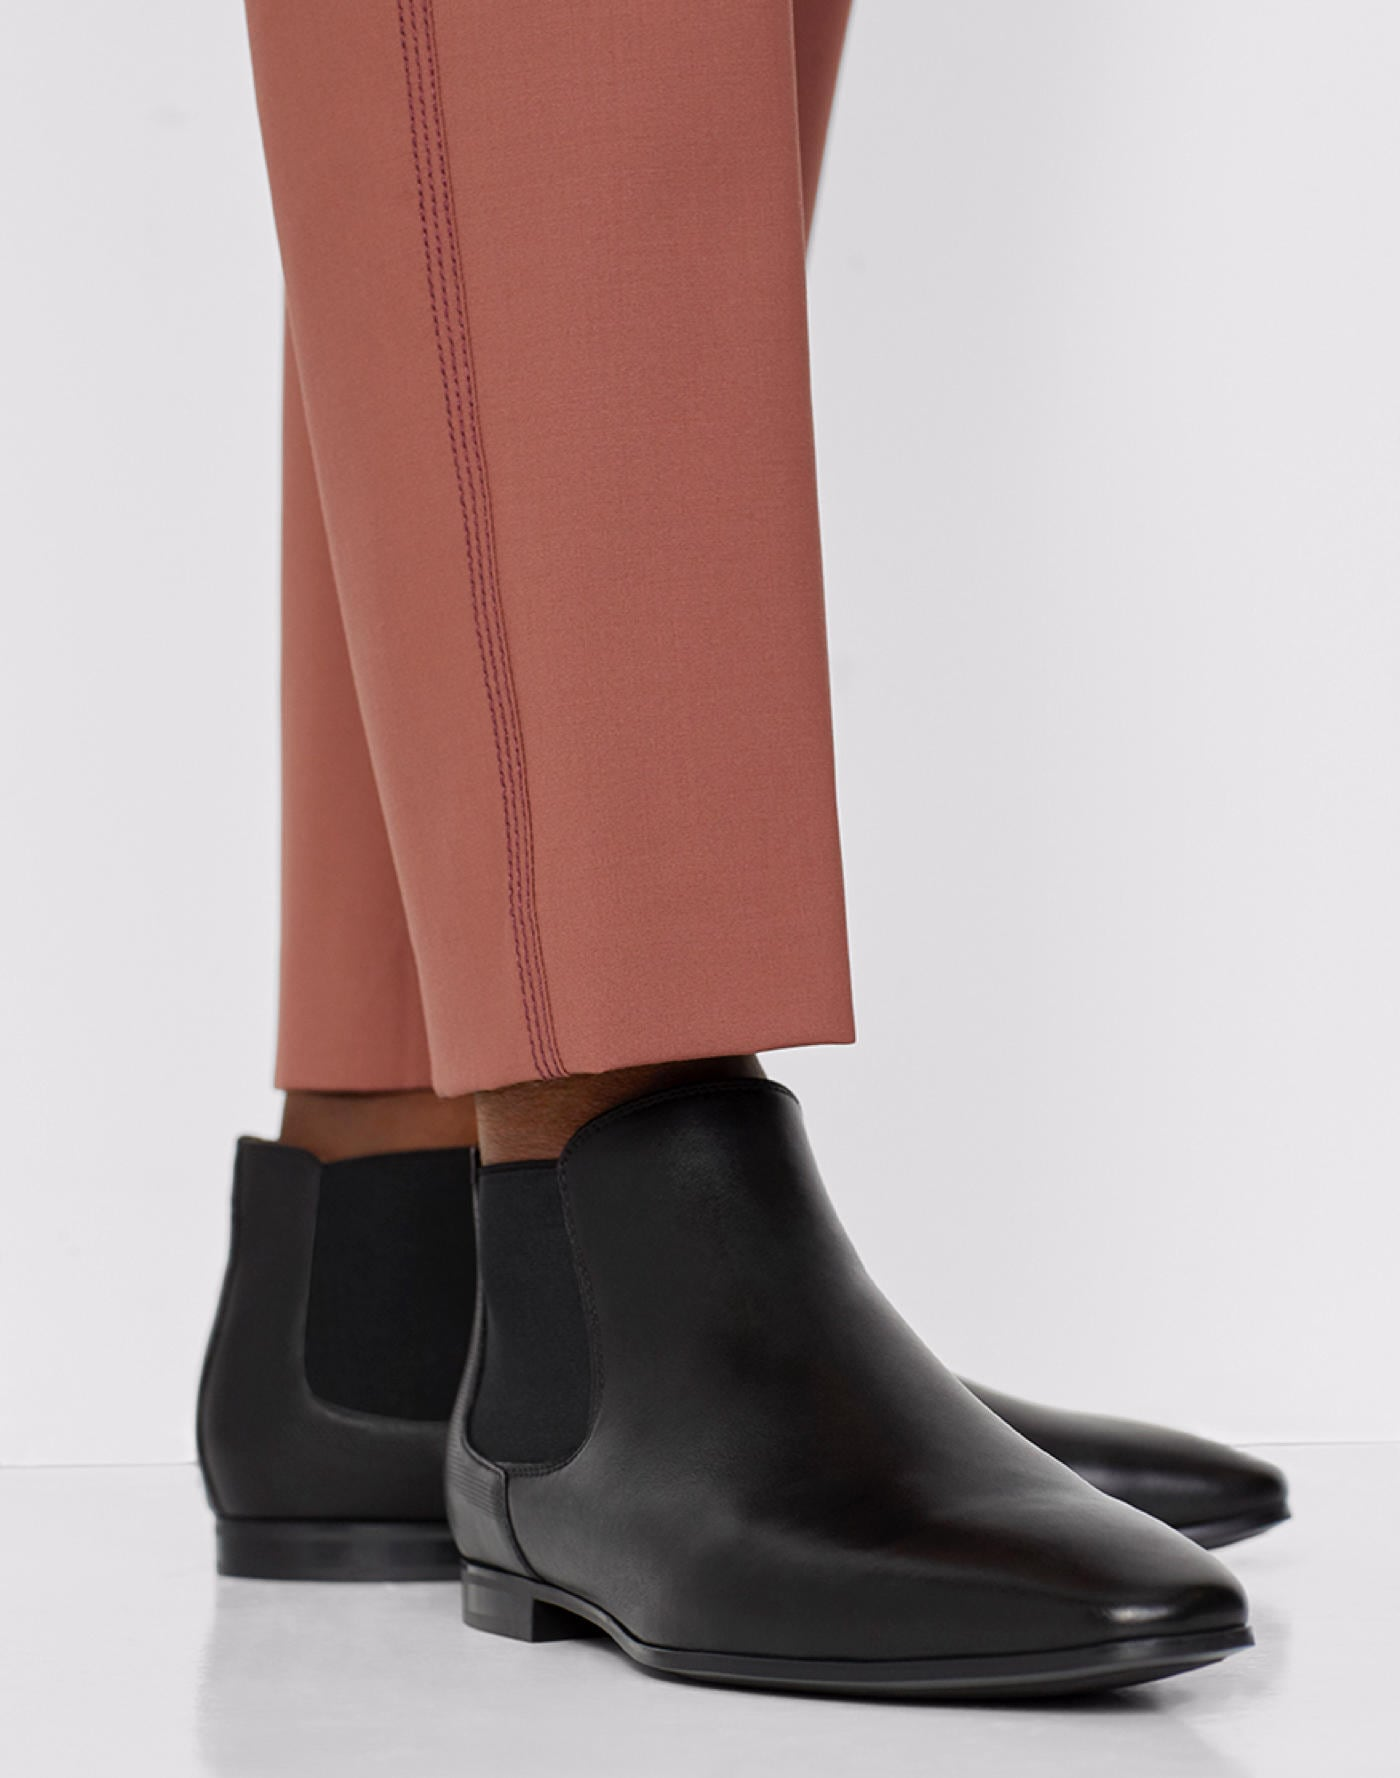 11dcec02137 Men's Boots | Dress & Chelsea Boots For Men | ALDO US | Aldoshoes.com US